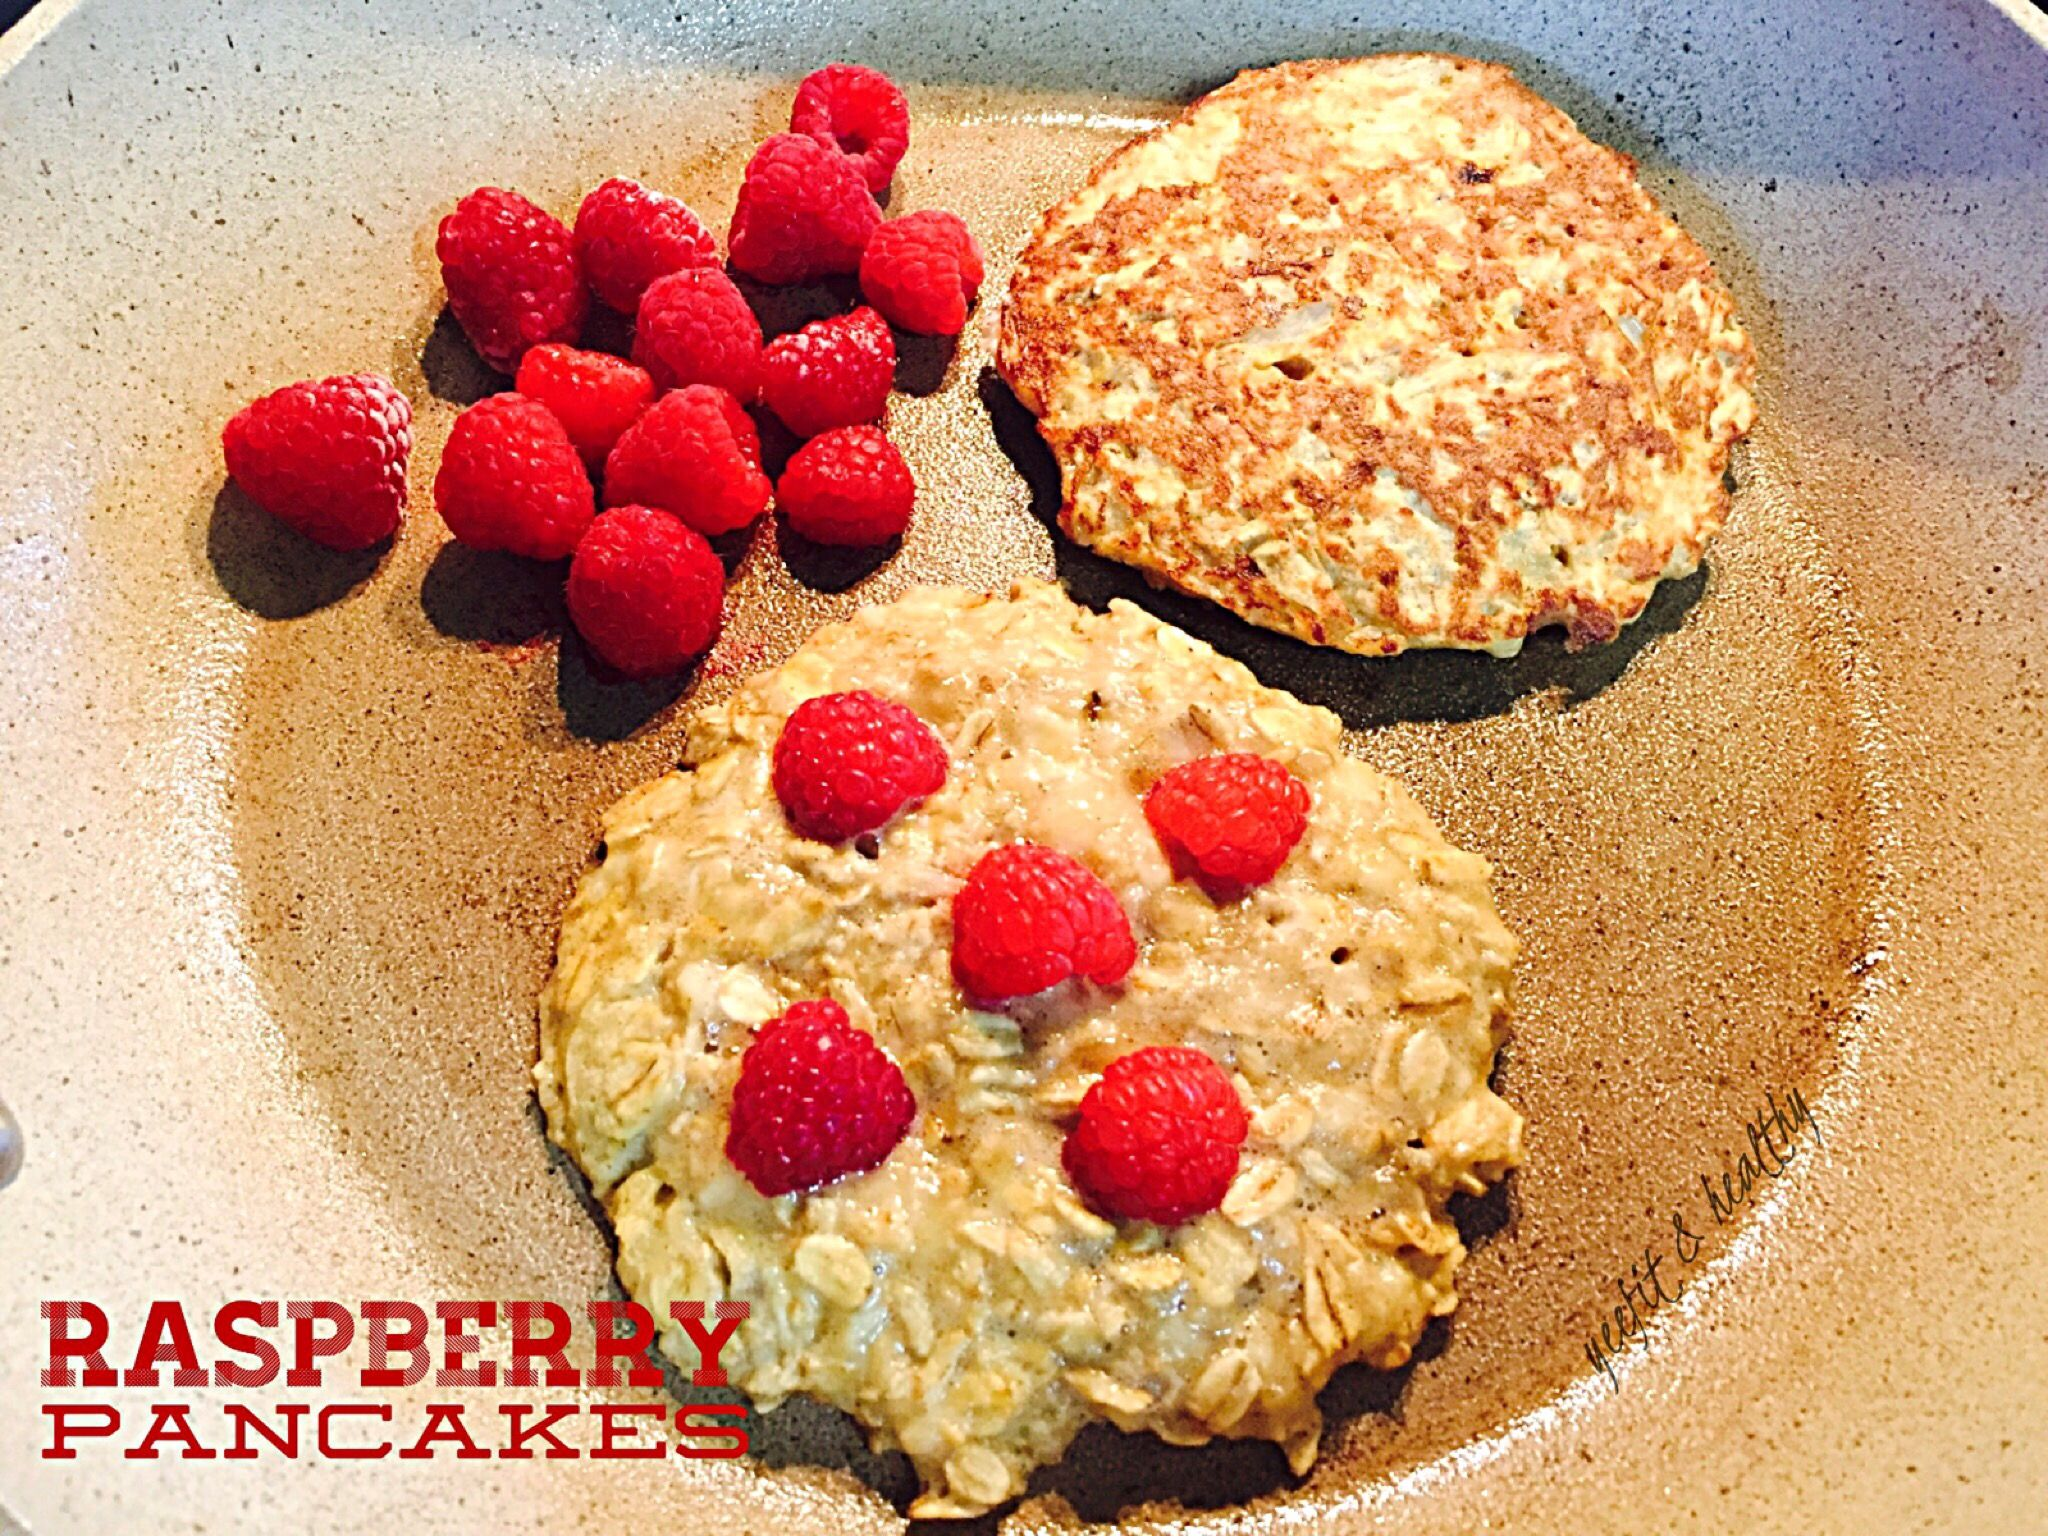 Starting this morning with a high protein breakfast, pancakes with a twist of raspberries.   In a blender mix : 1/2 cup rolled oats 1/2  banana 1 egg 1/2 teaspoon vanilla extract   In a skillet over medium heat, spray non-stick cooking spray , grab a 1/4 cup of mixture onto skillet , add some raspberries on top.  Sautéed some aside for a few seconds !  (wow tastes so good)  Flip pancakes until golden brown and breakfast's ready!